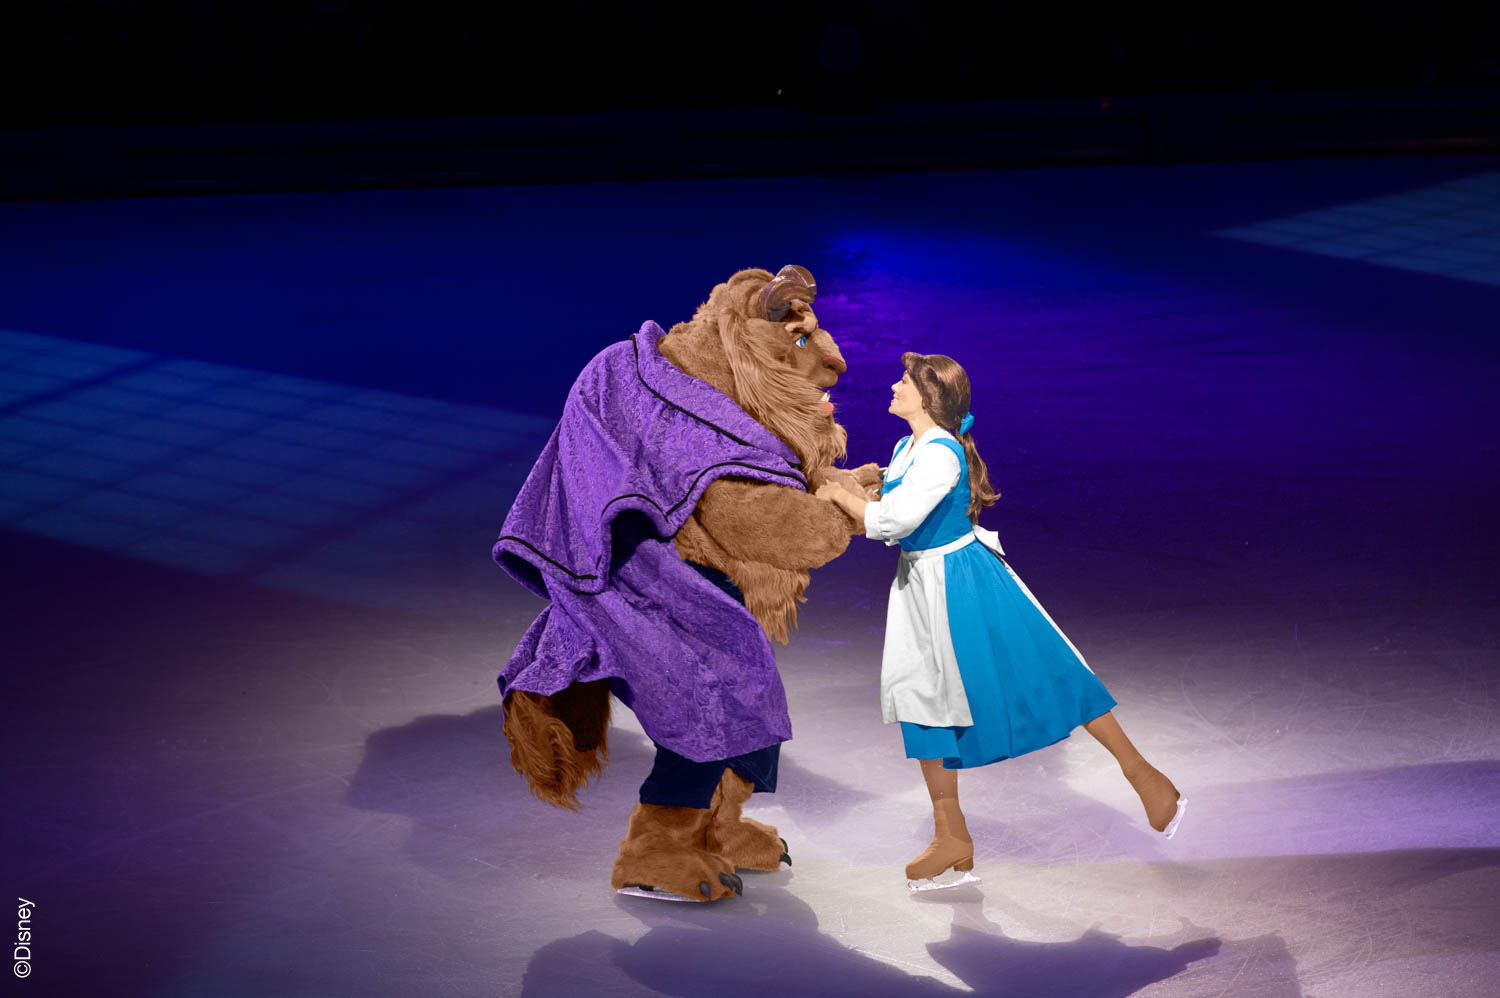 Disney Om Ice Us Frozen Tour